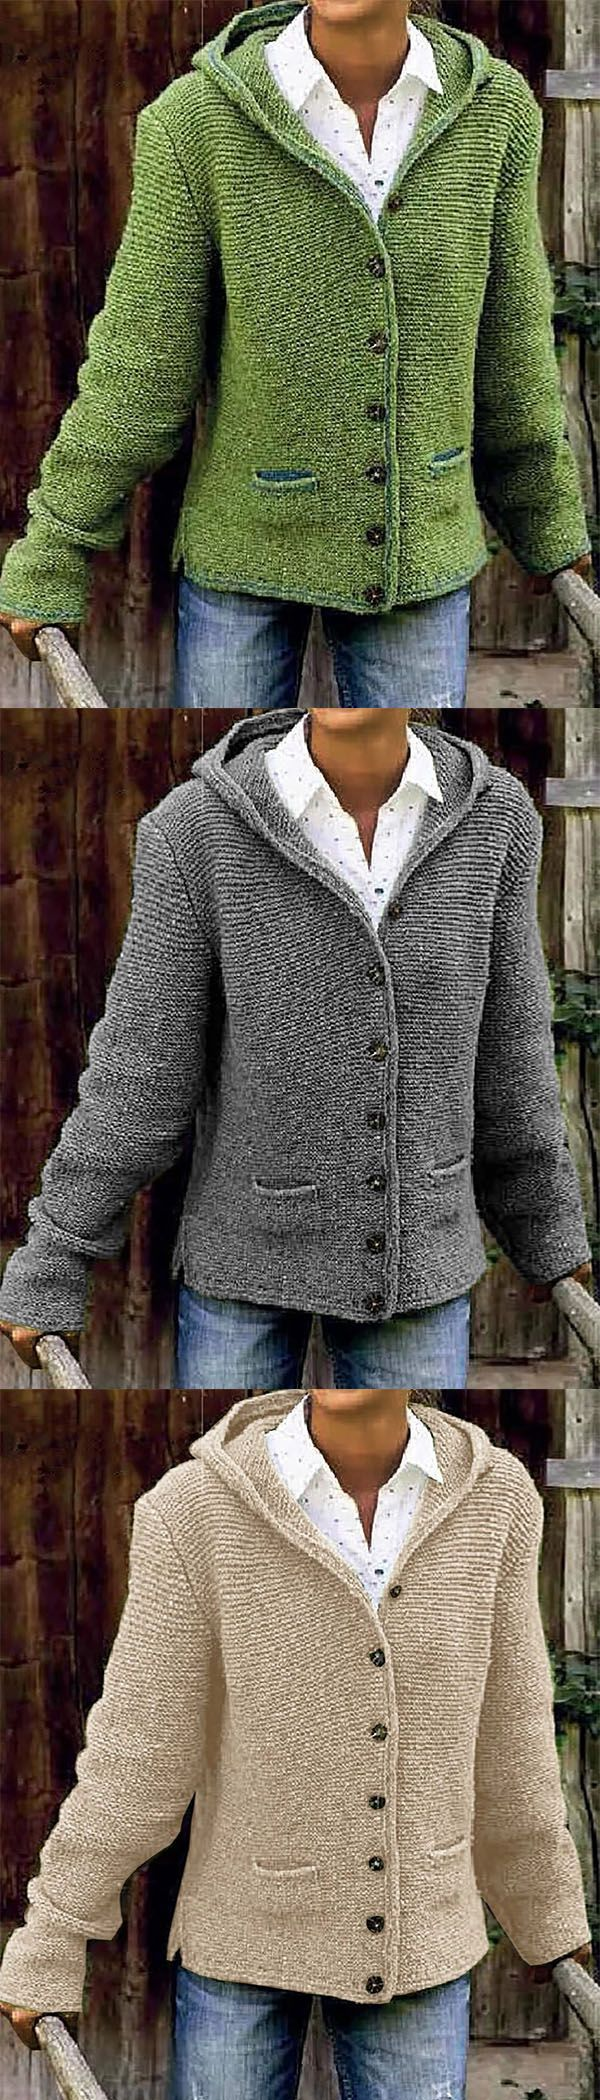 64% OFF>>Hooded Long Sleeve Knitted Cardigan Sweater